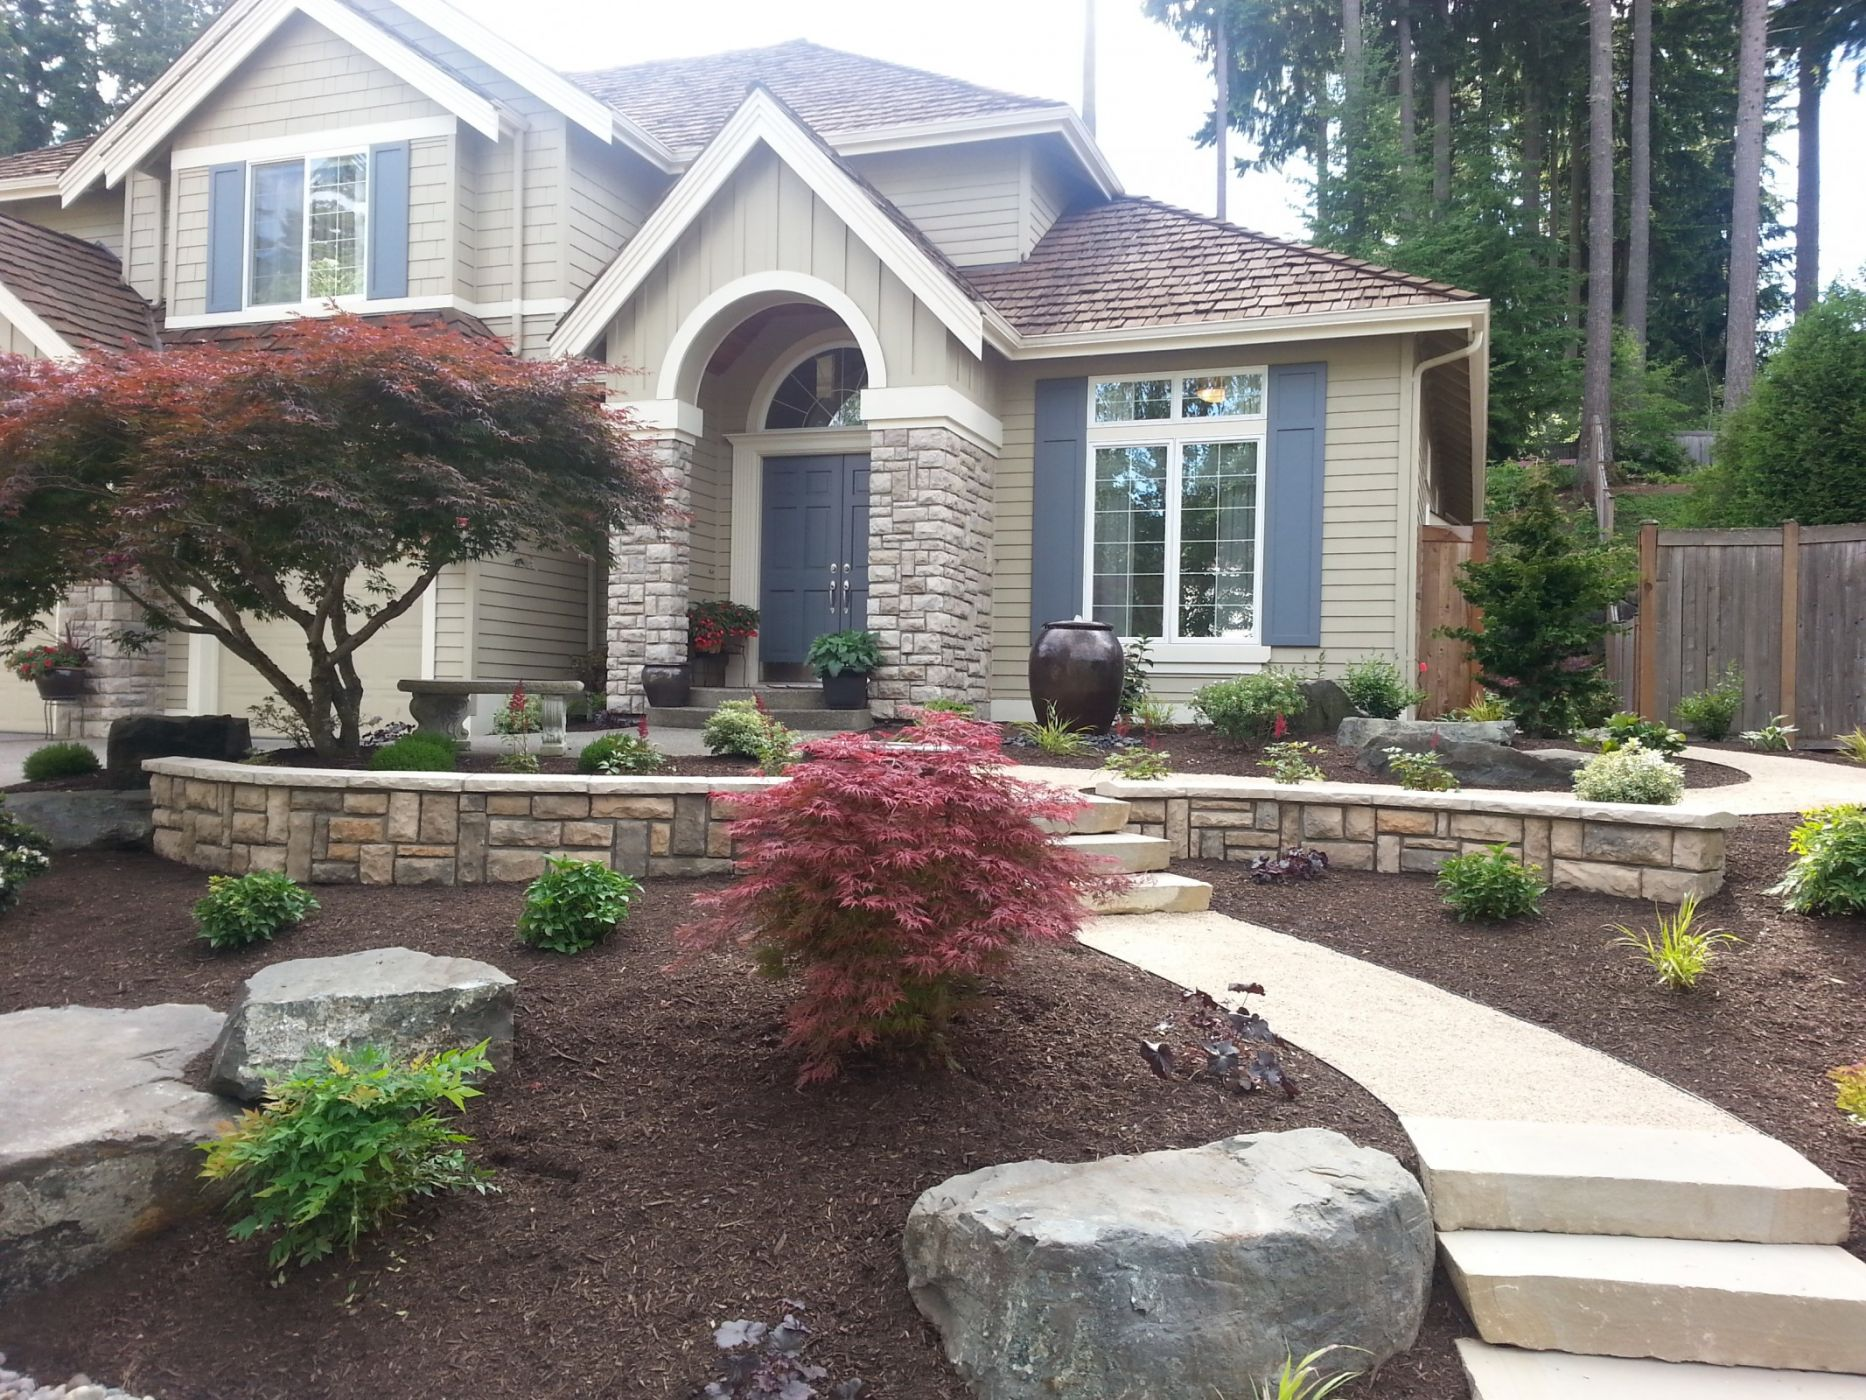 Janika landscaping ideas front yard illinois here for New home front yard landscaping